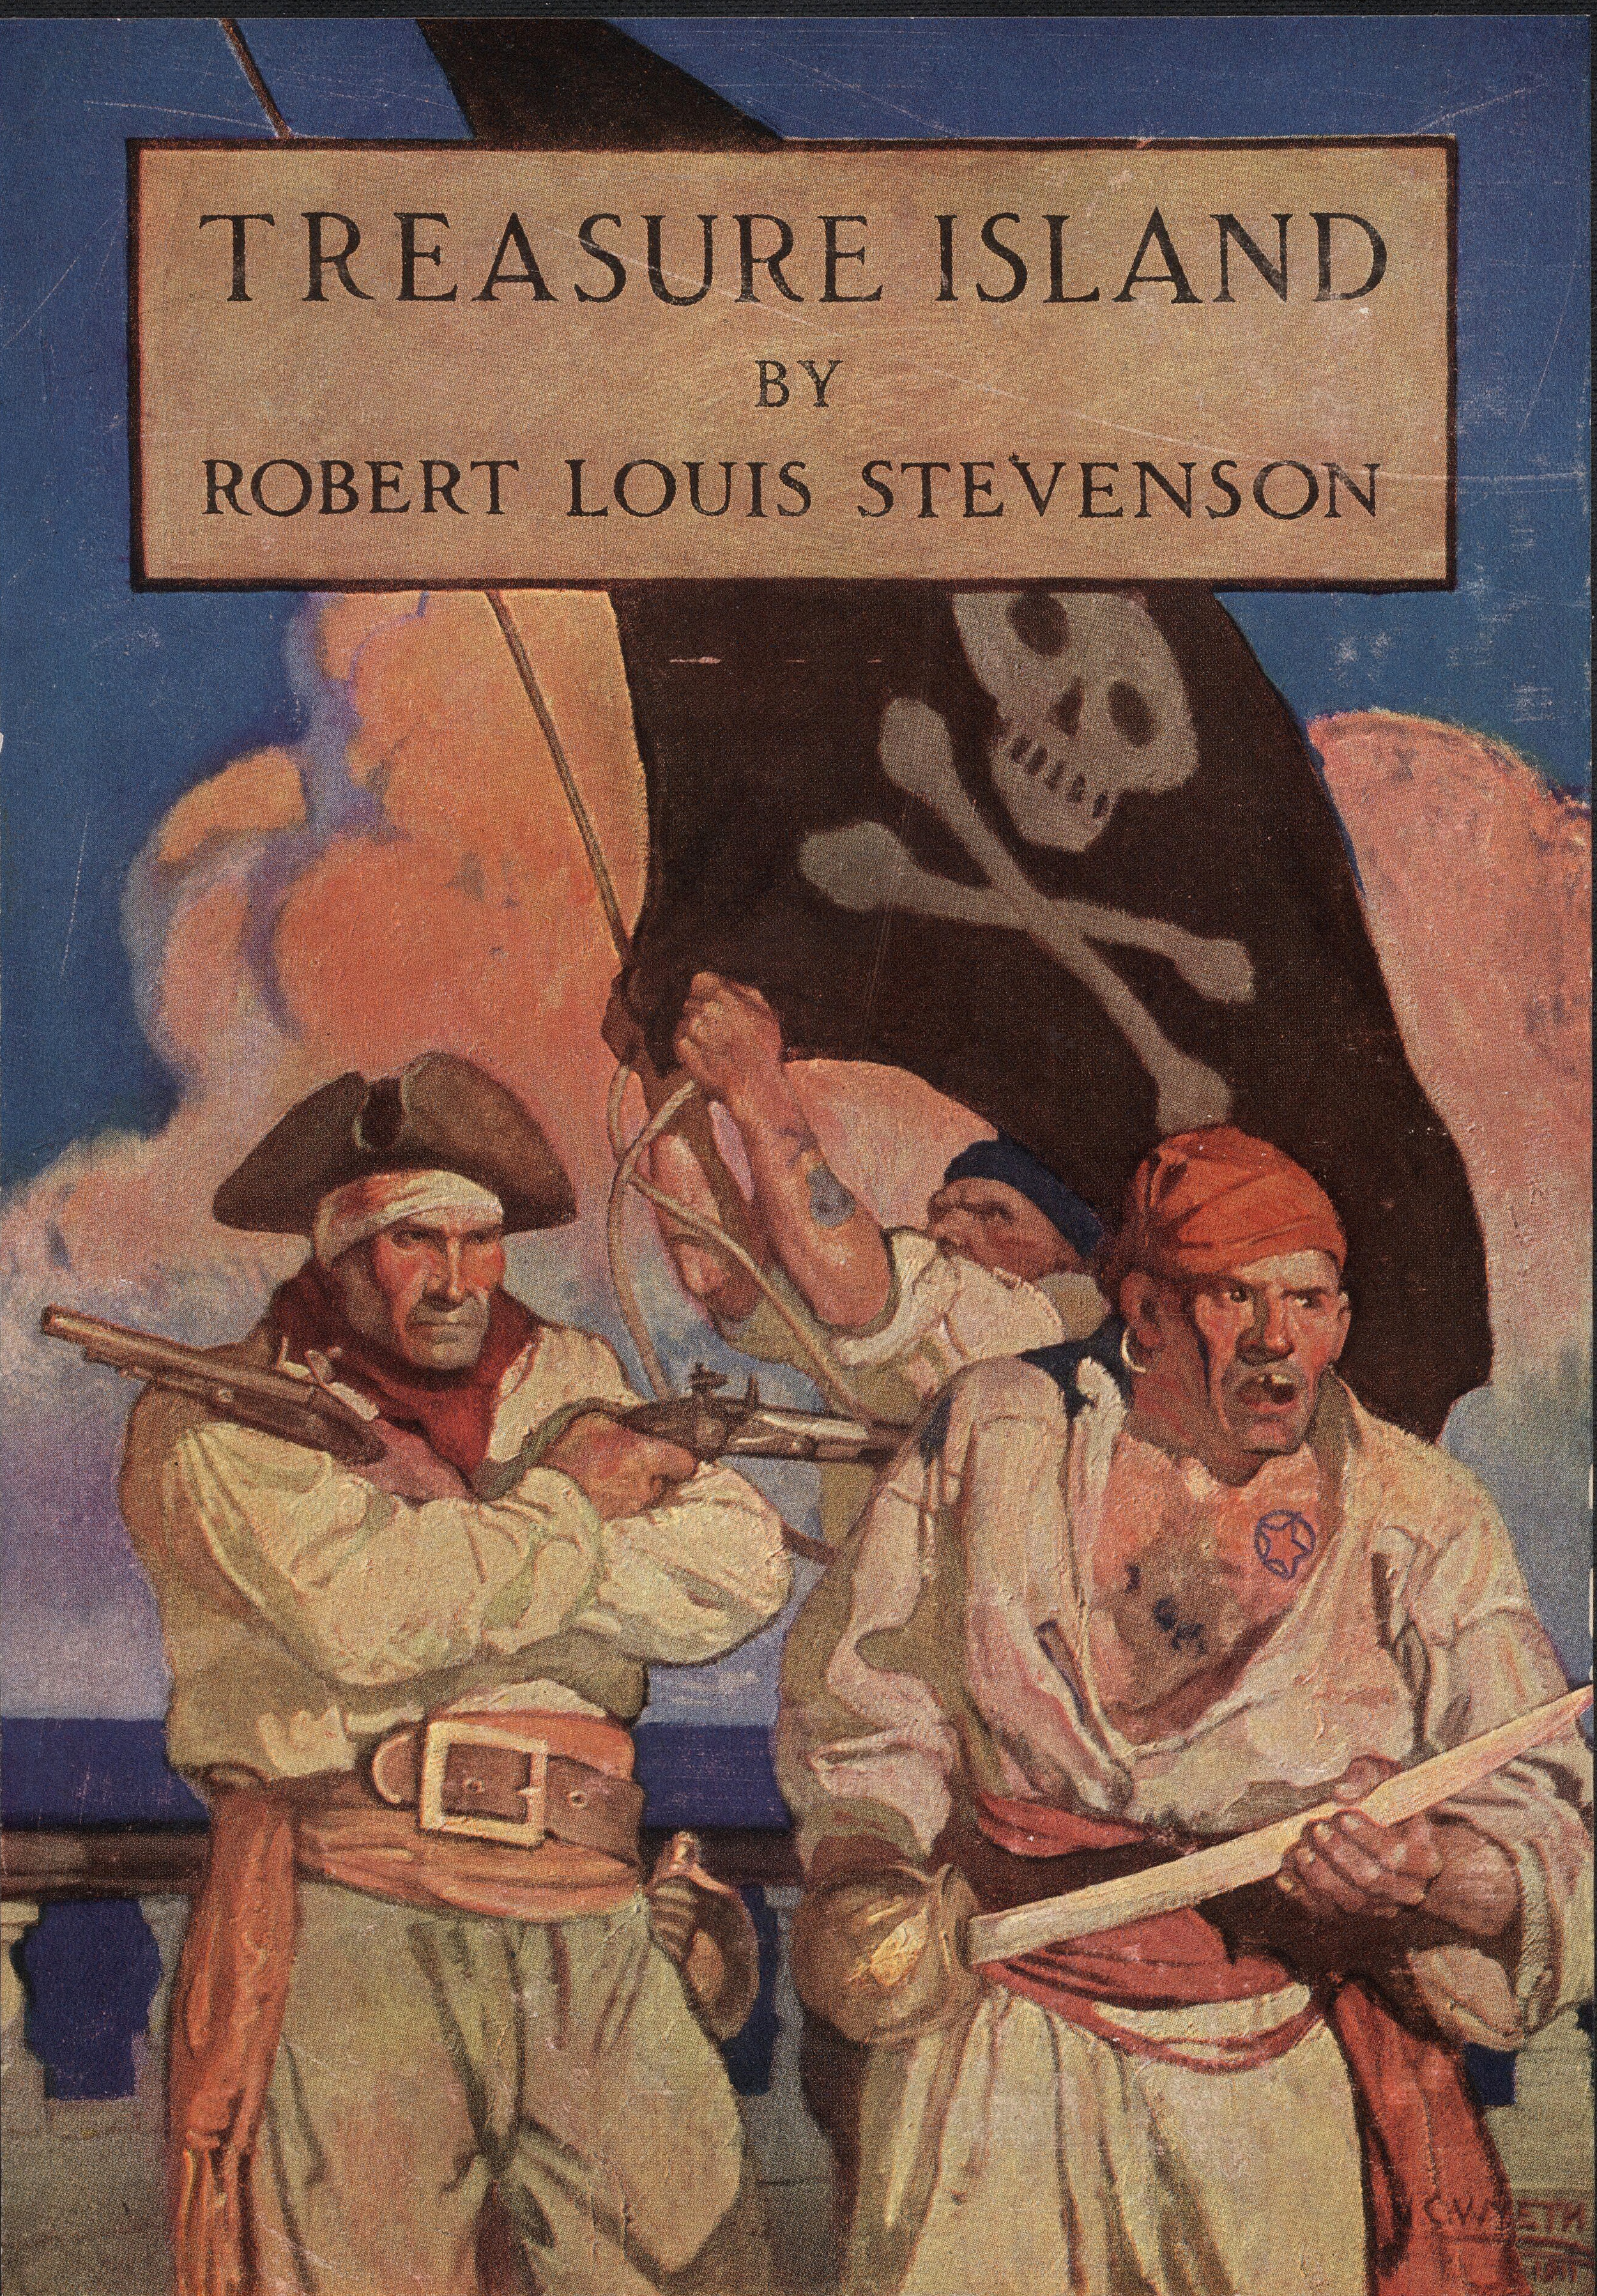 A 1911 copy of Robert Louis Stevenson's  Treasure Island